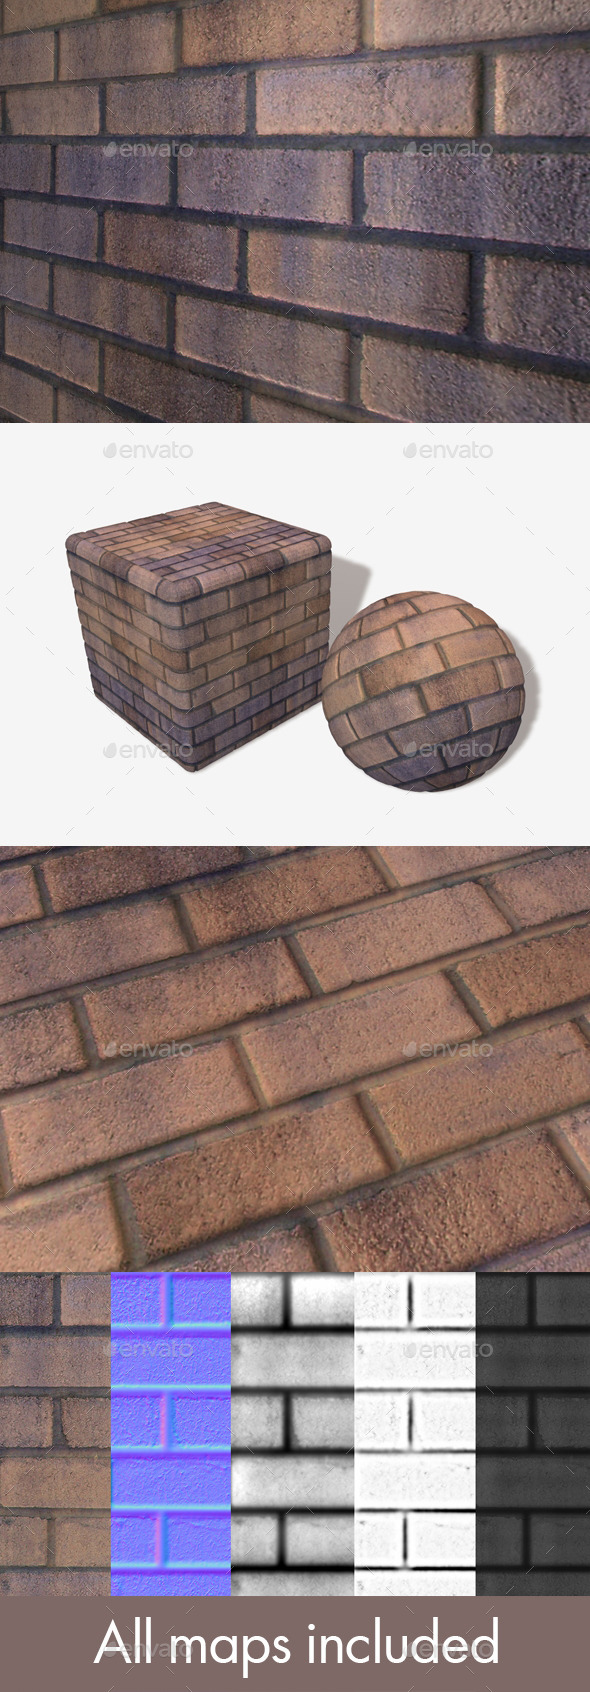 Orange Purple Brick Wall Seamless Texture